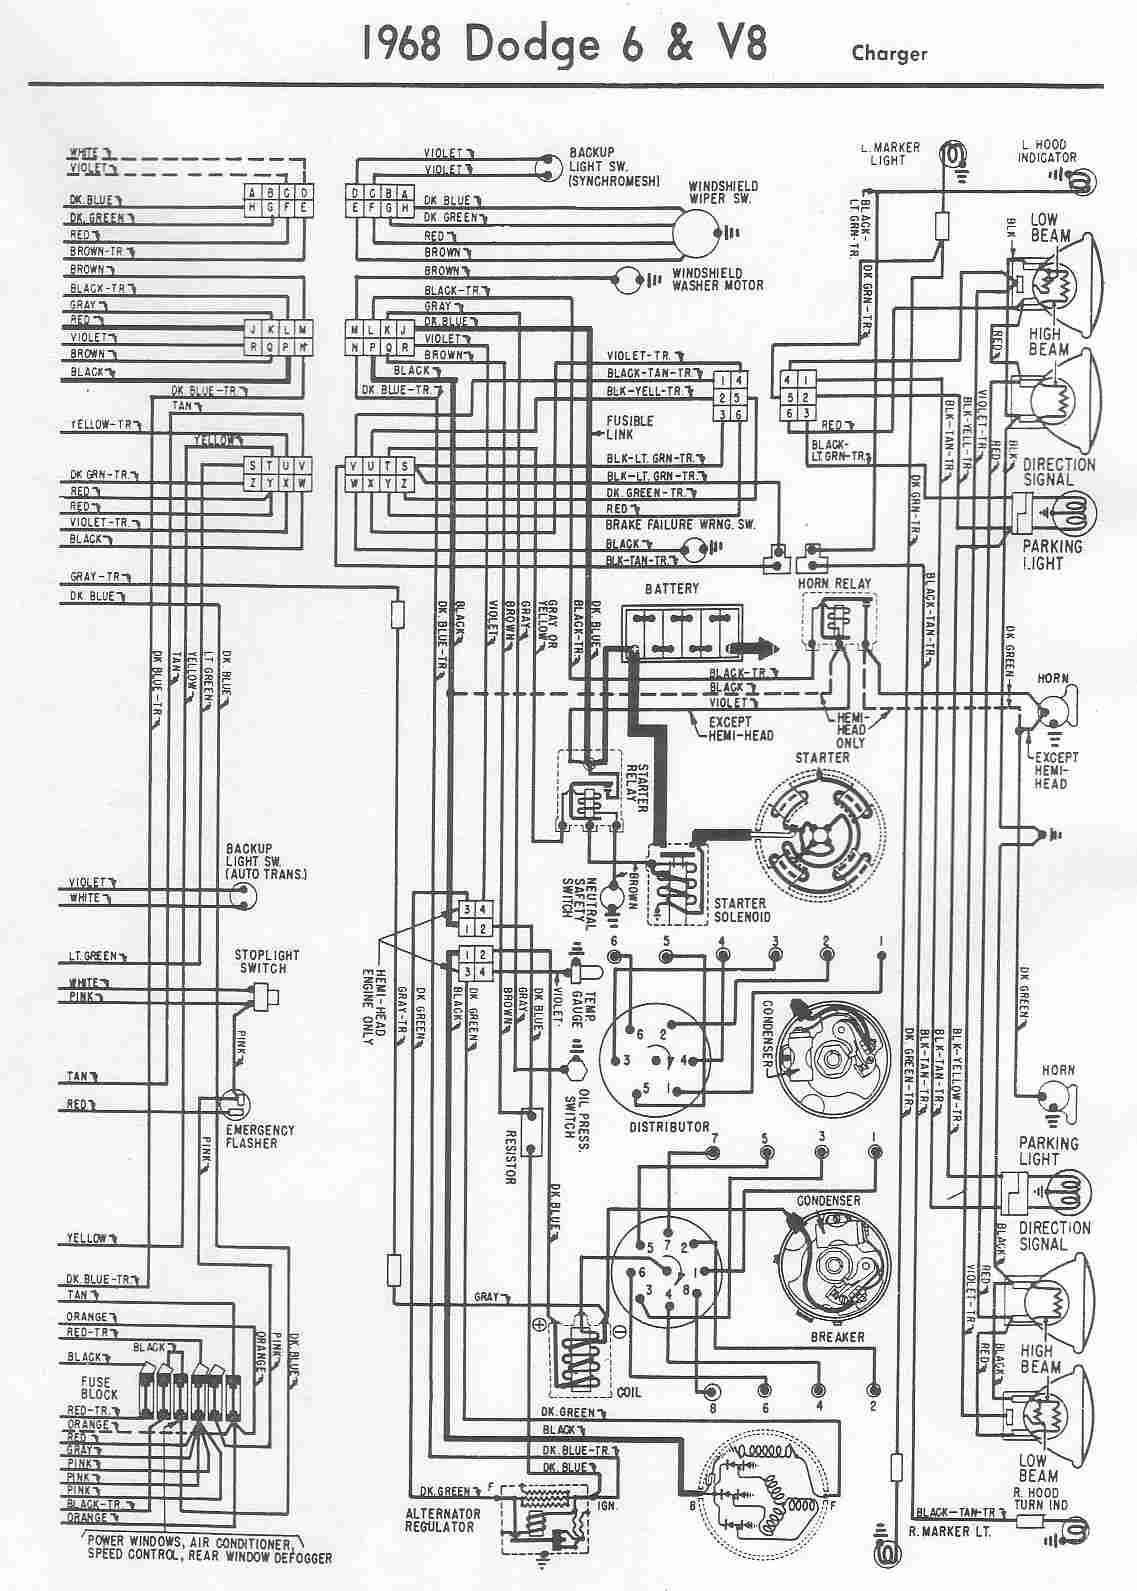 2008 Subaru Tribeca Wiring Diagrams Diagram Library Fuse Box For Mitsubishi Eclipse